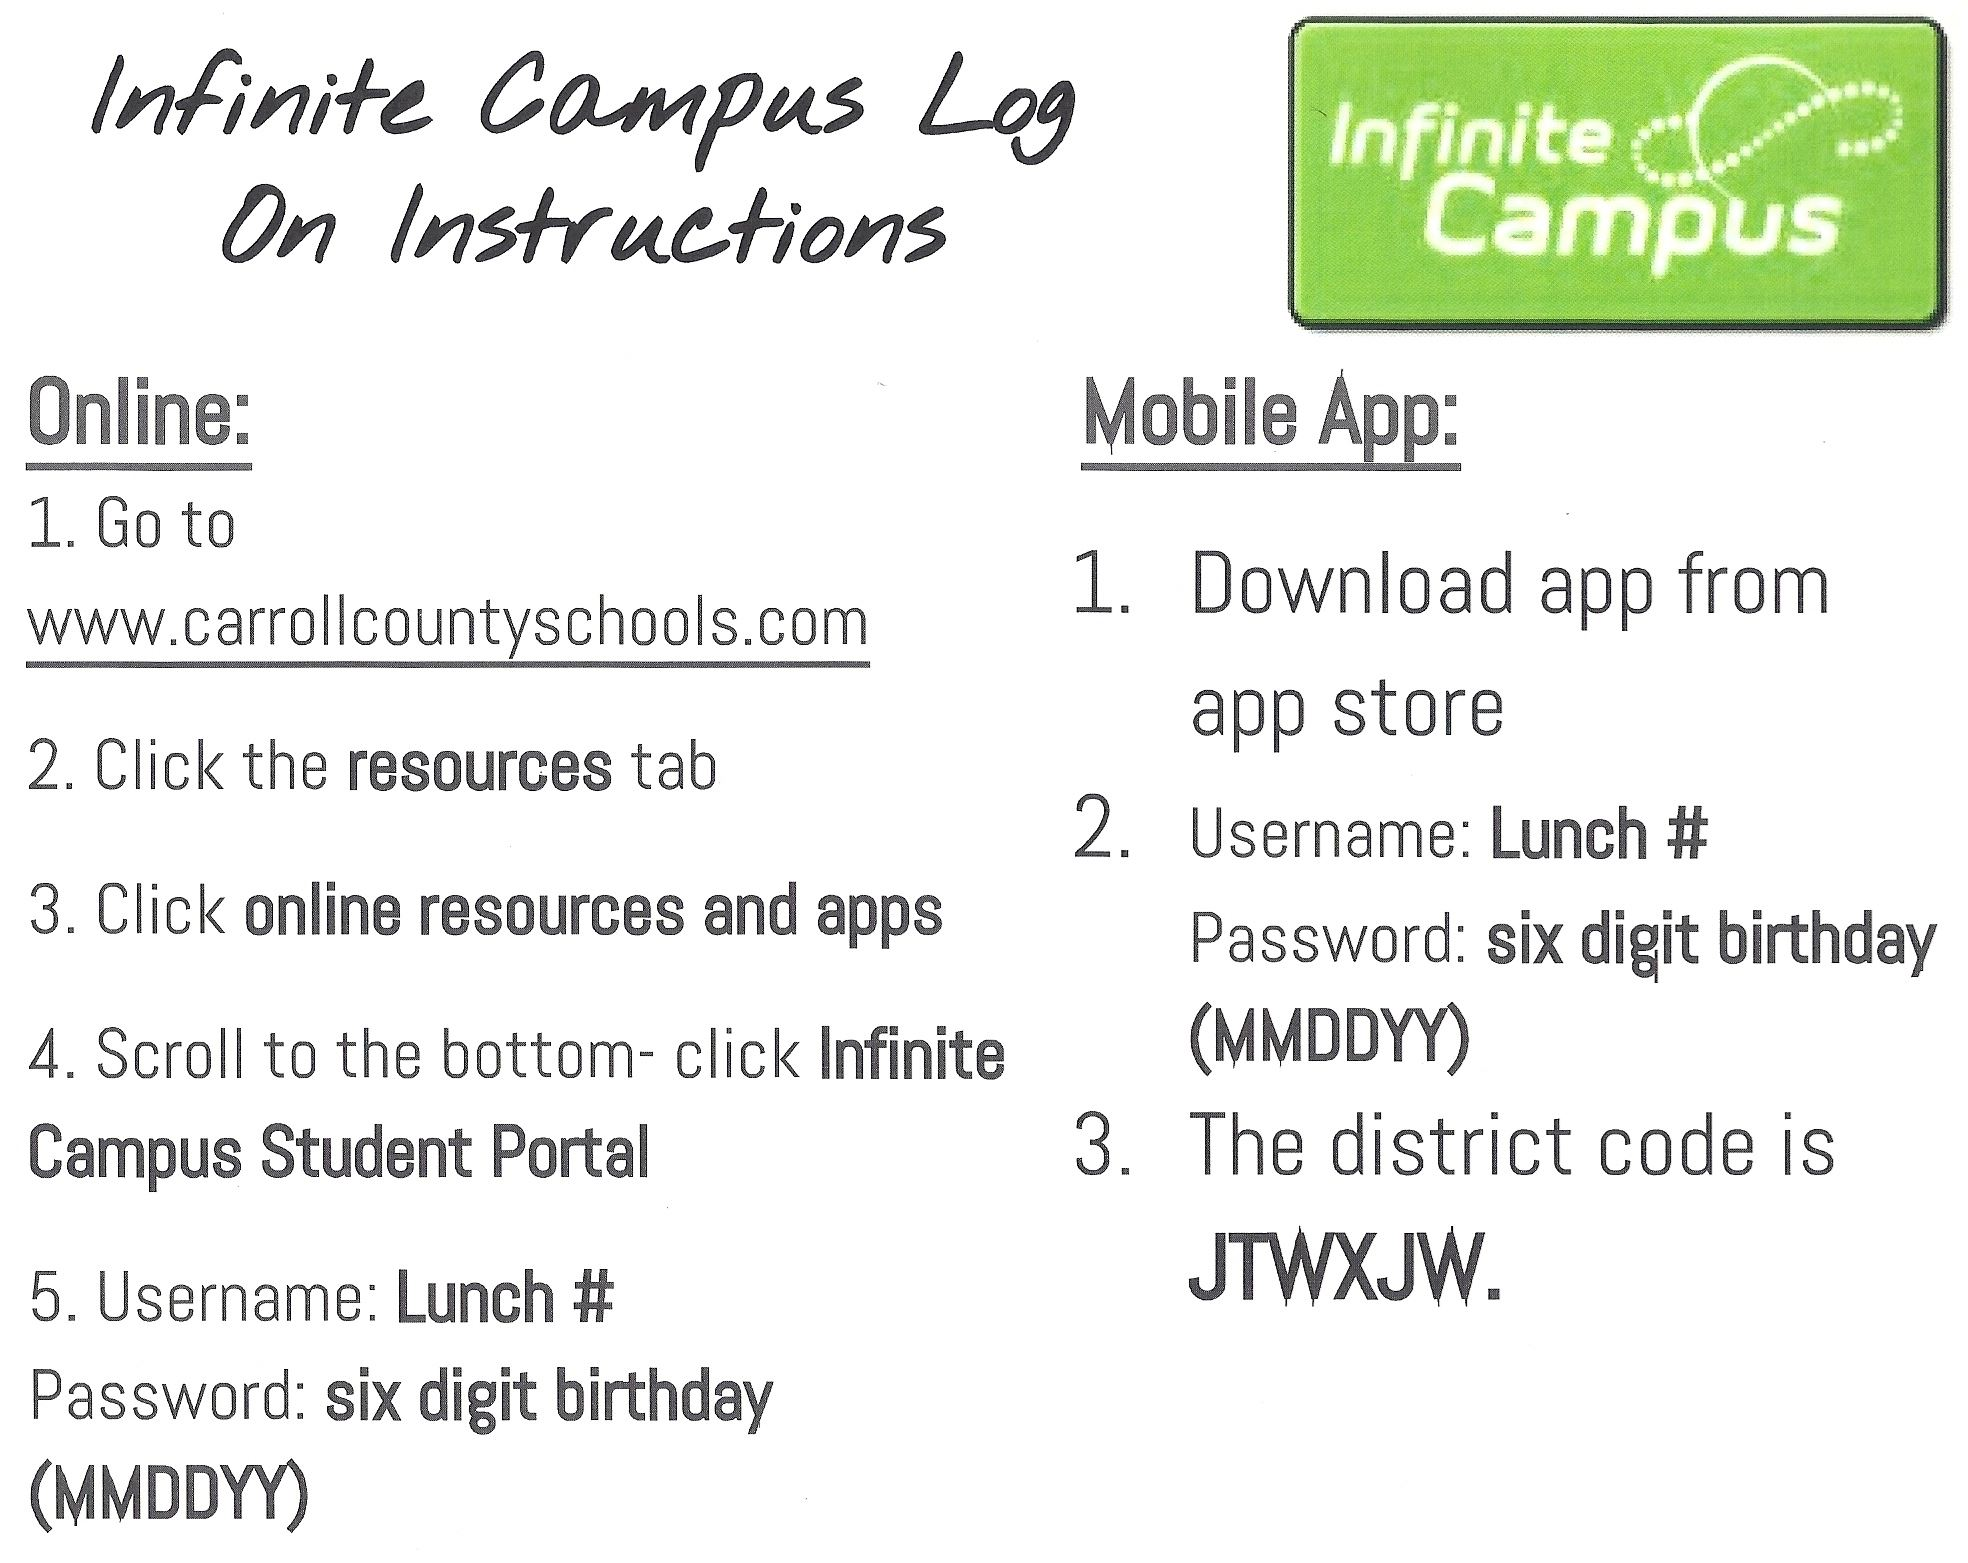 Quick Reference Sheet for Infinite Campus